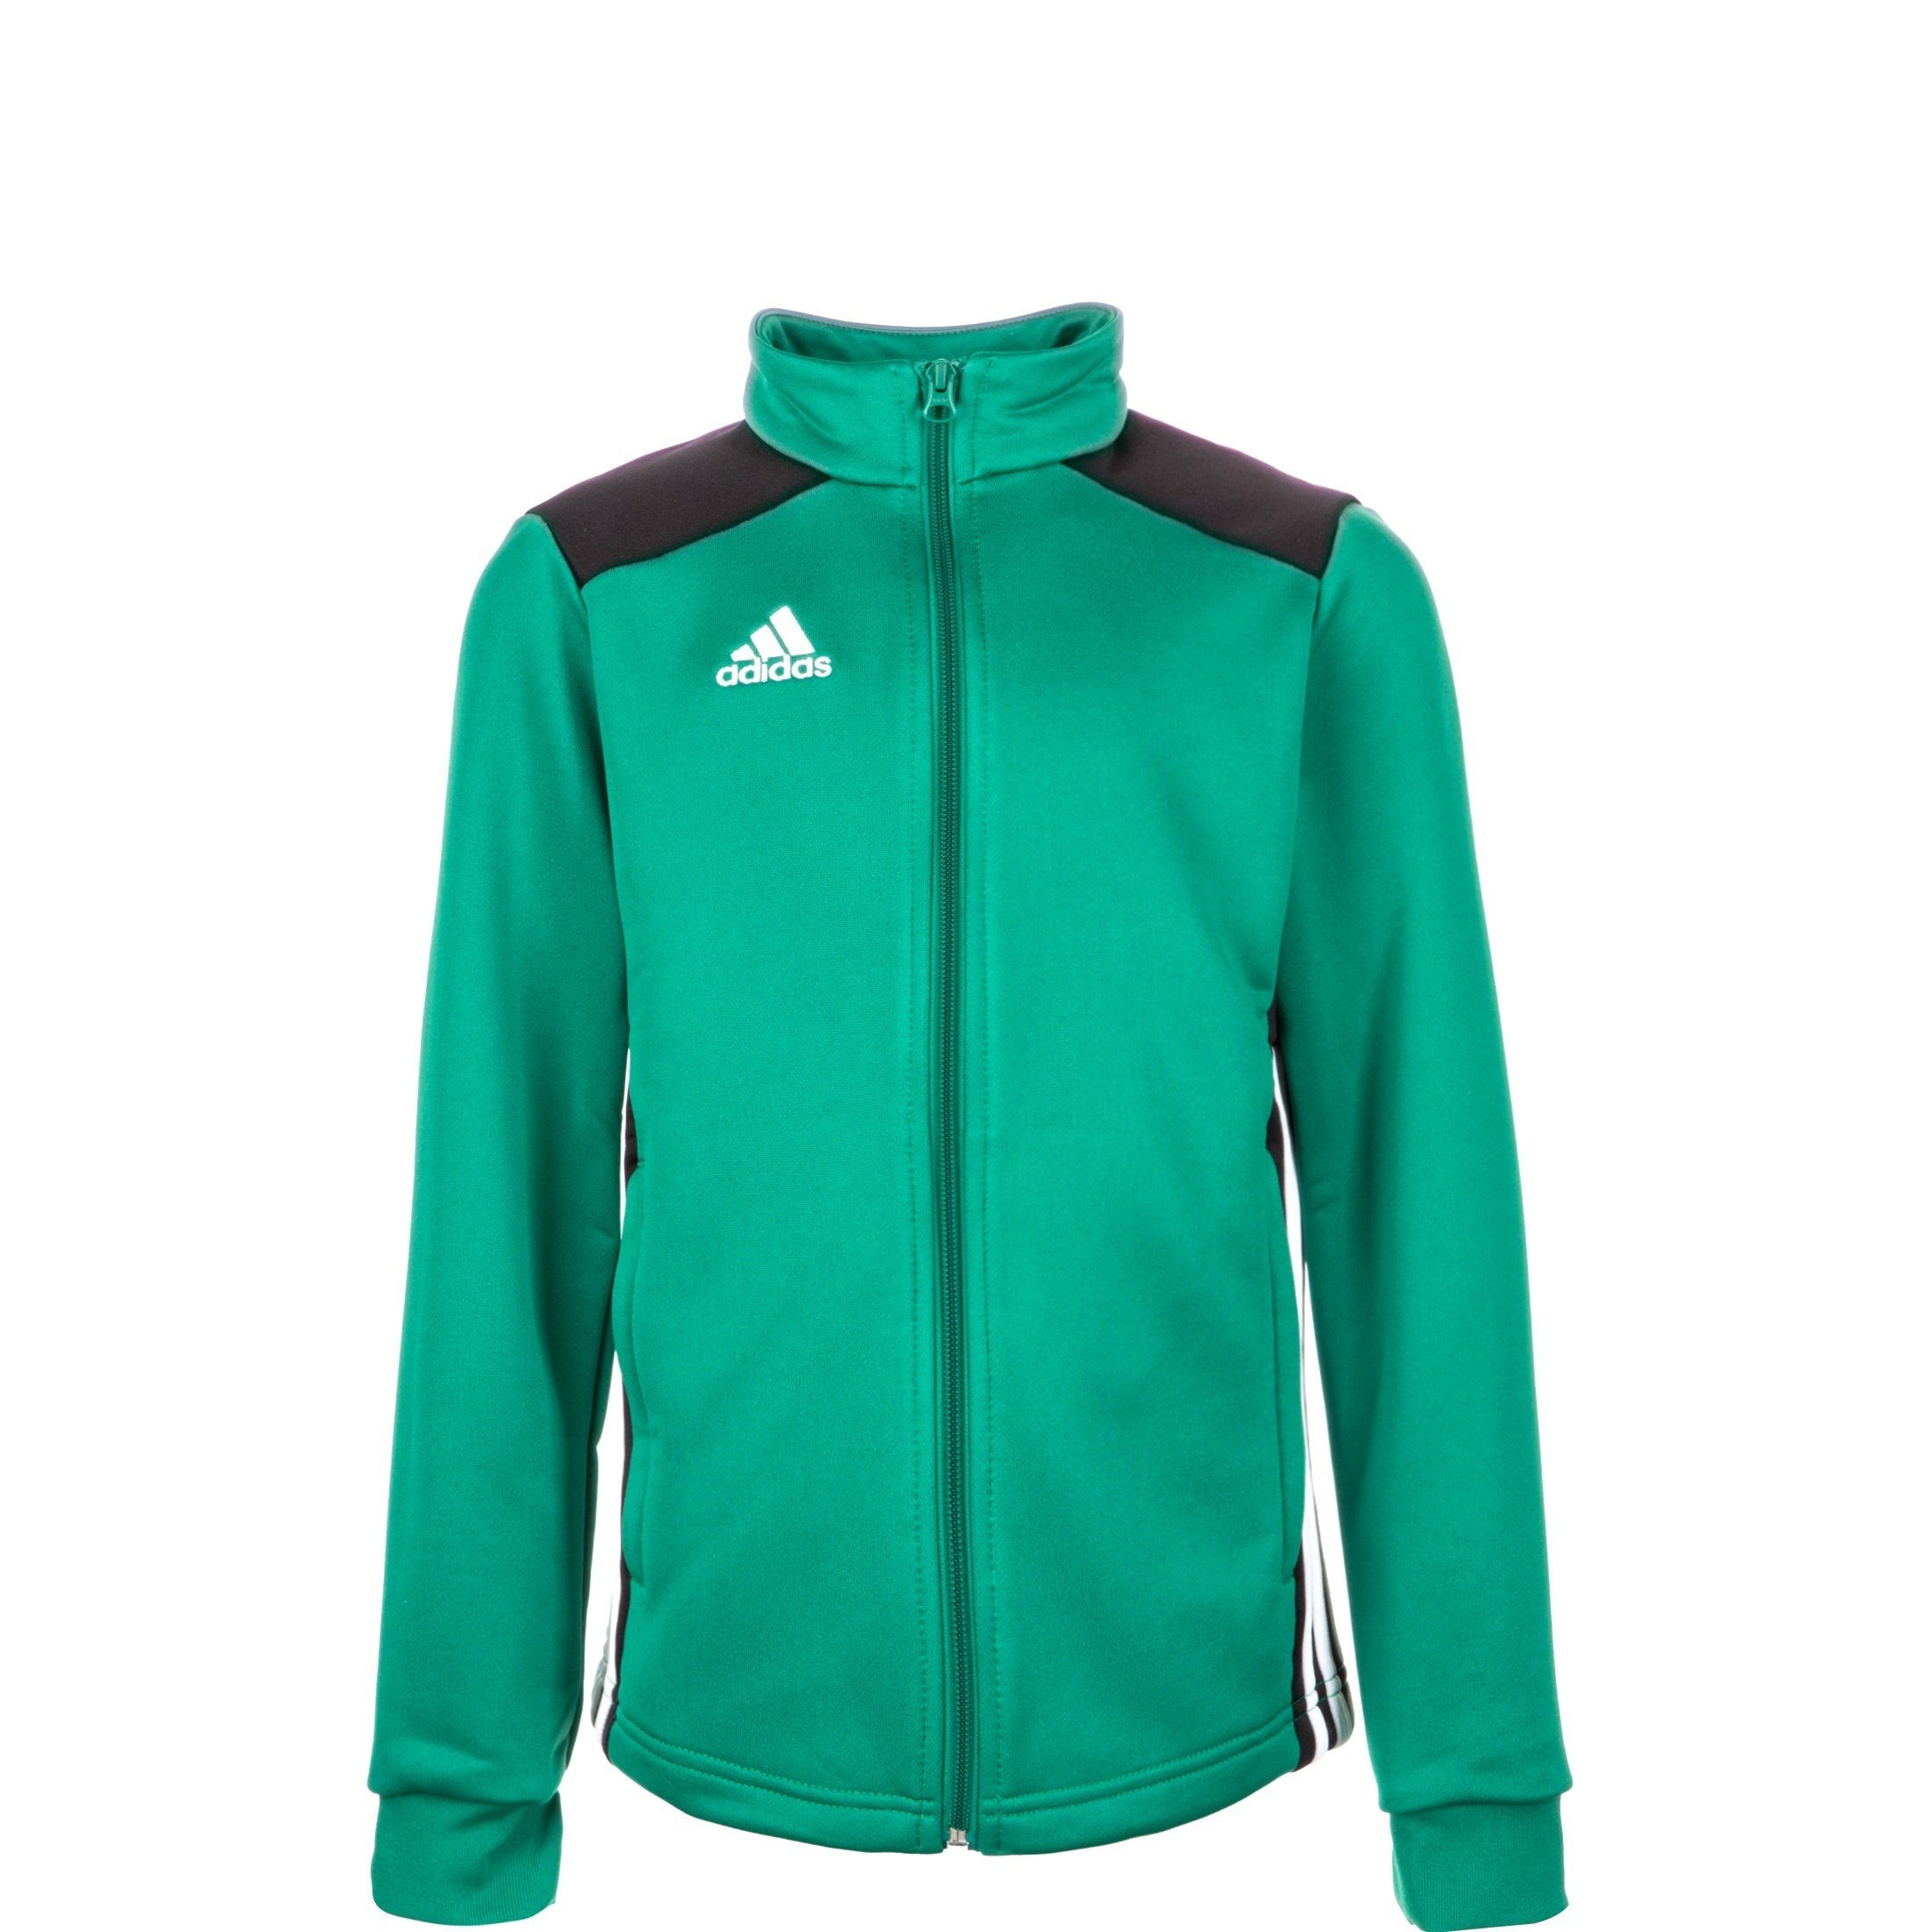 adidas Performance Sweatshirt Regista 18, grün, Kinder